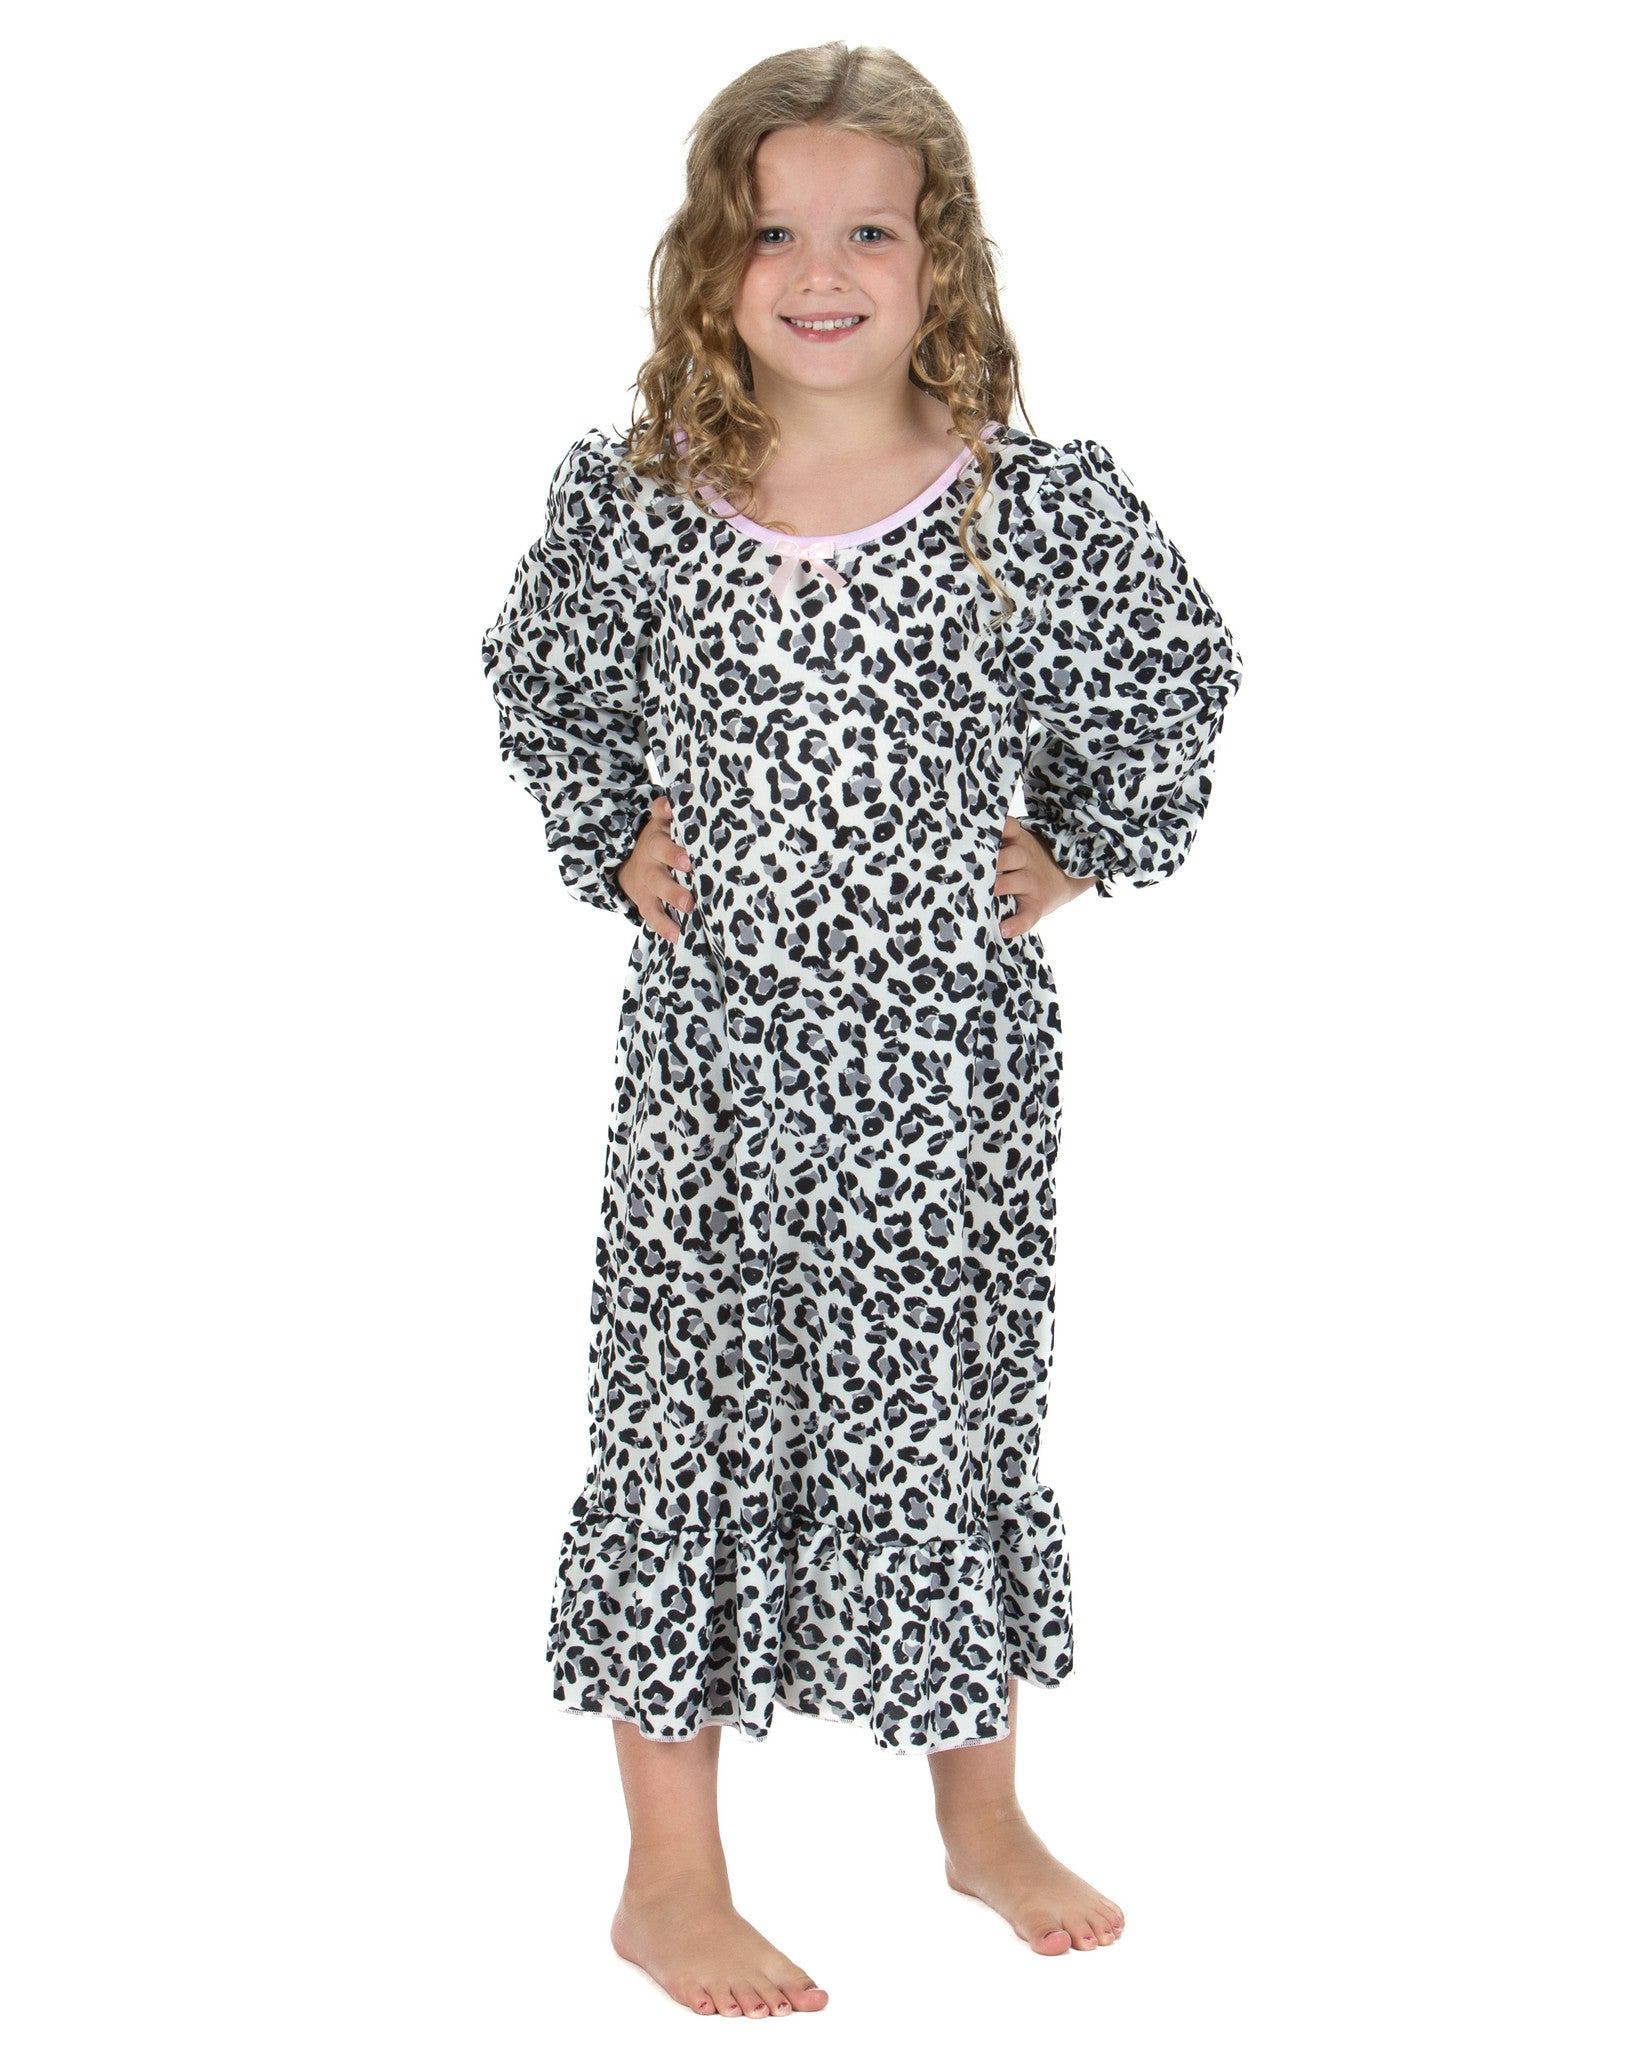 Laura Dare Wild Yet Precious Long Sleeve Nightgown